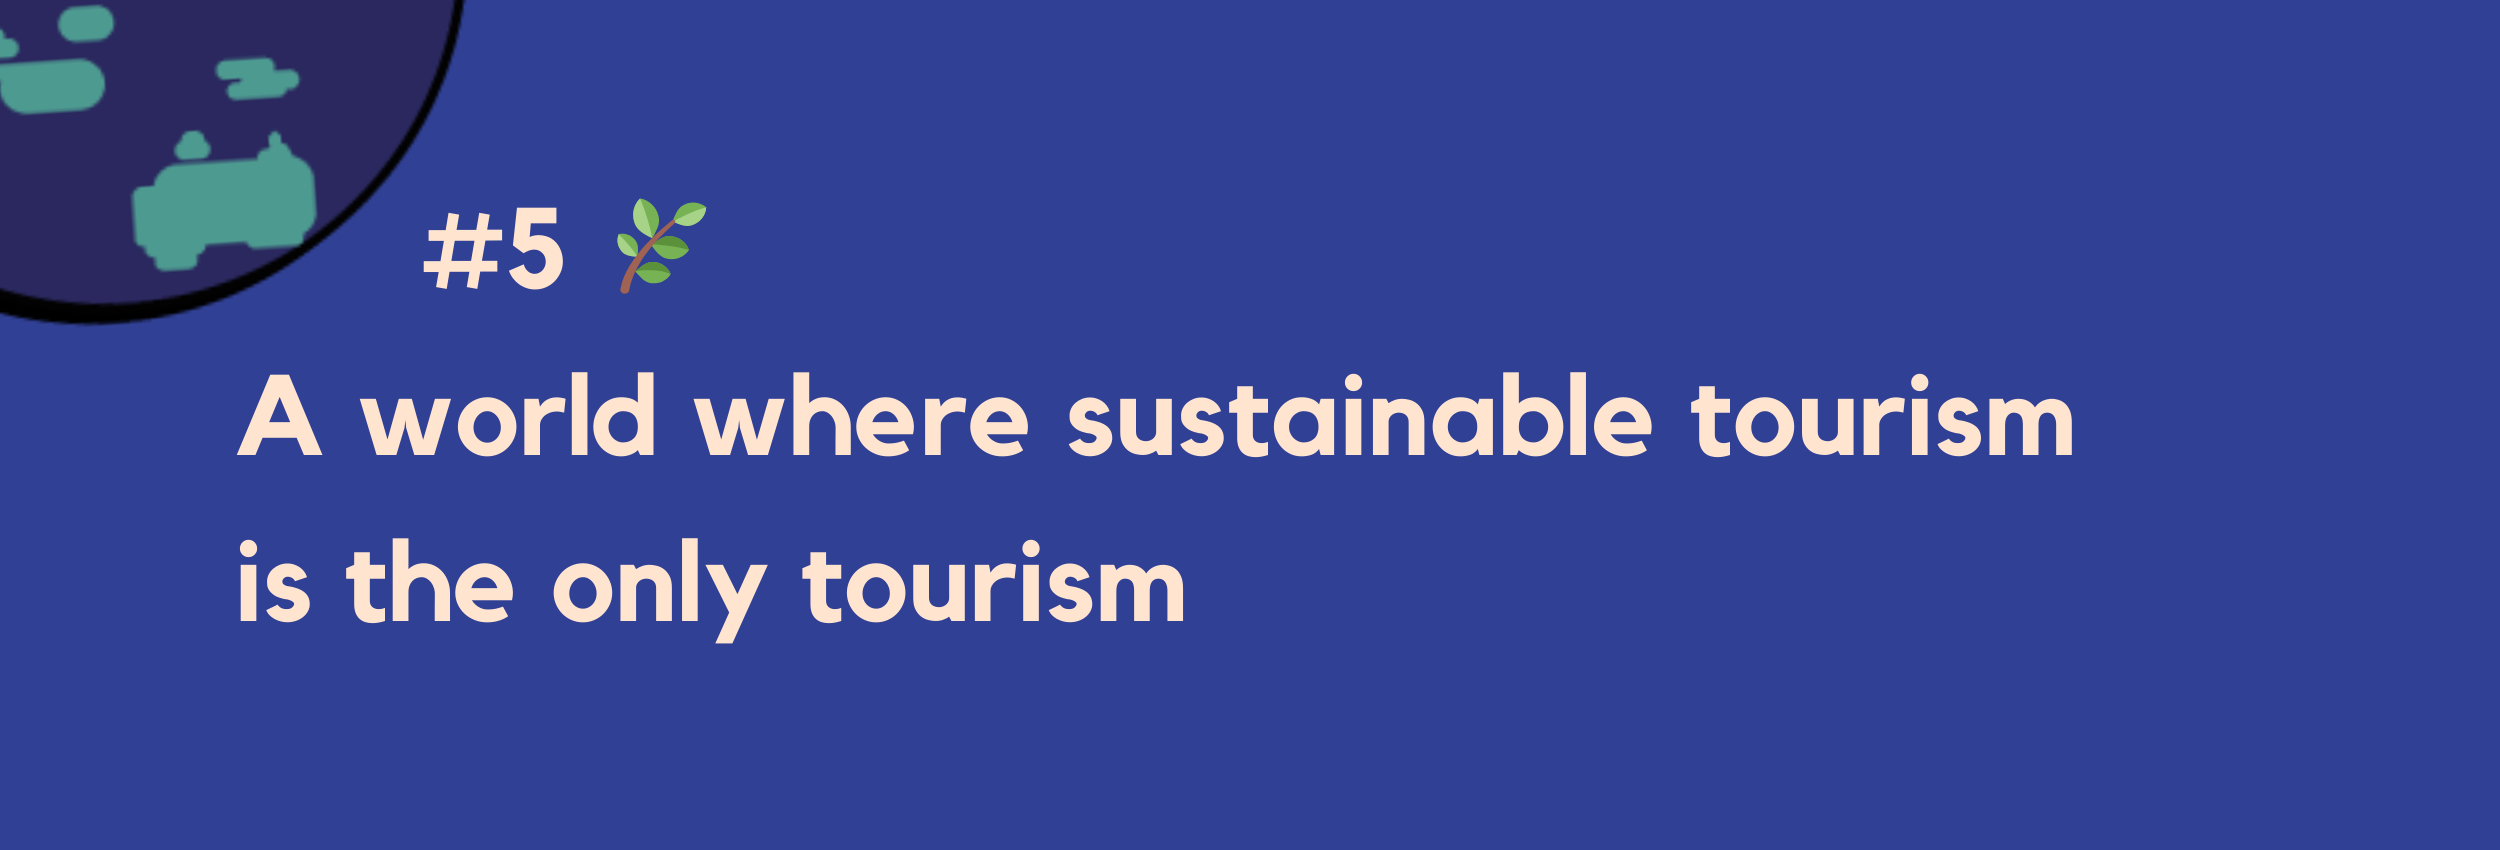 #5 — A world where sustainable tourism is the only tourism